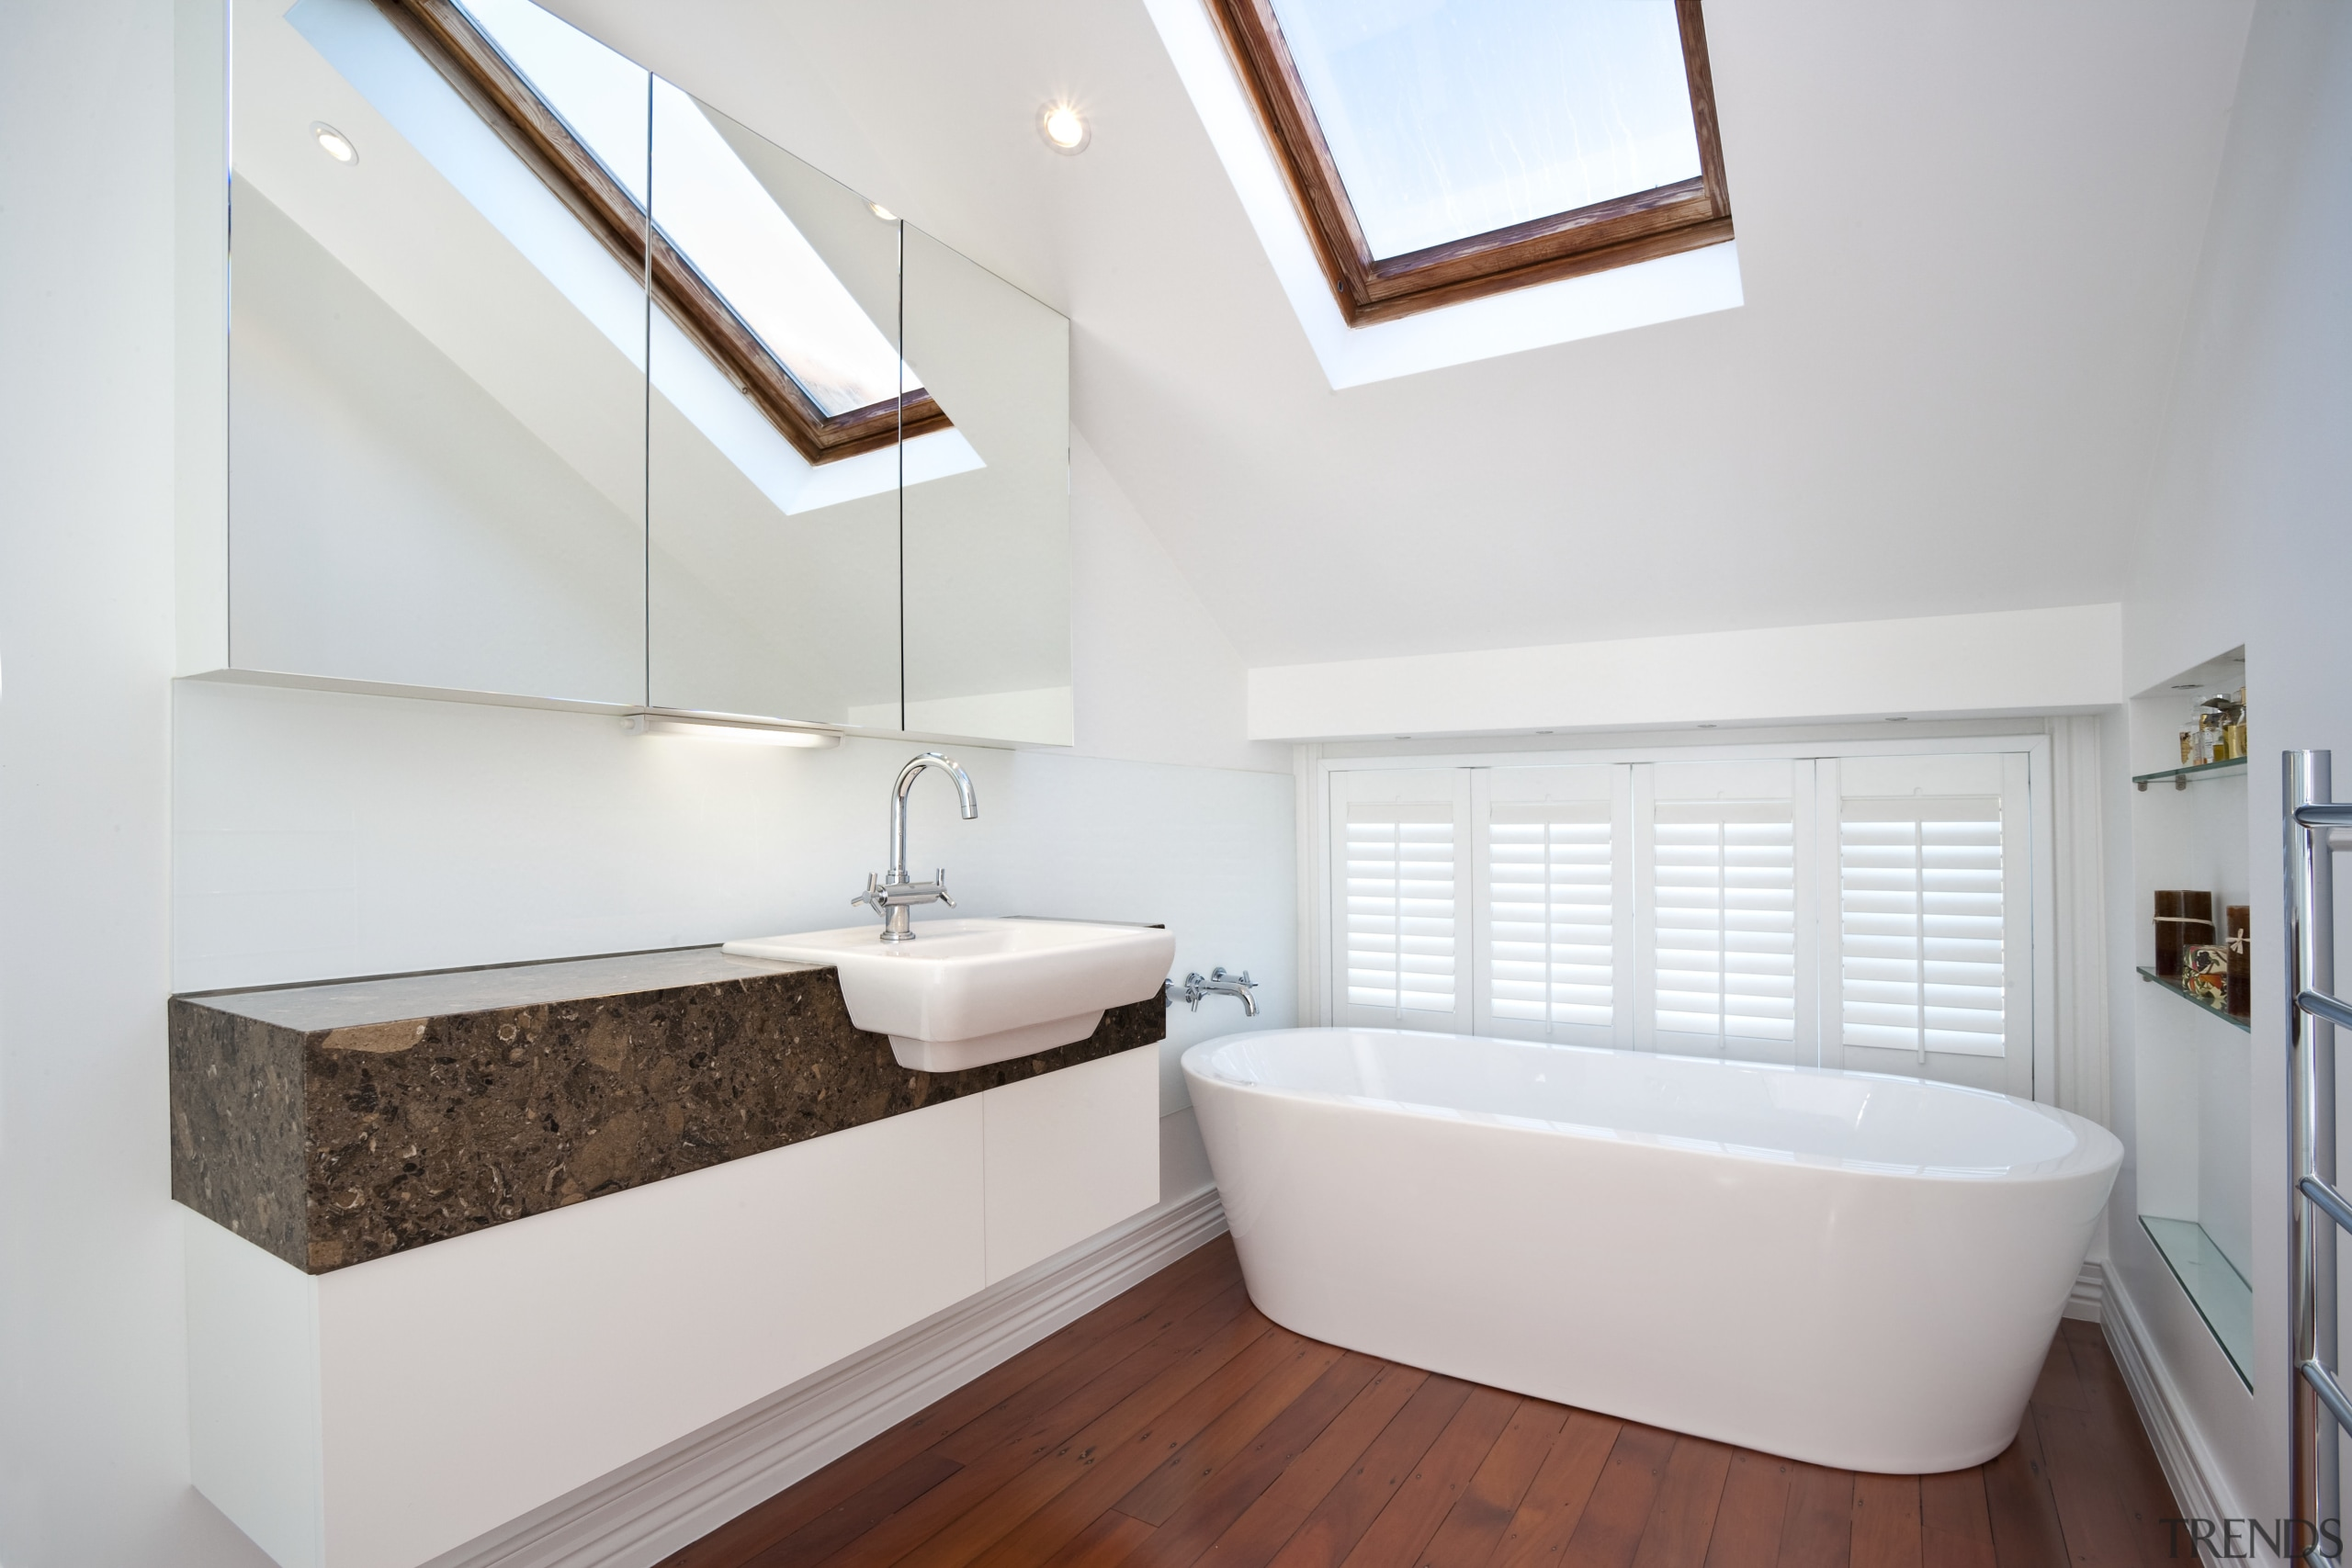 View of this remodeled contemporary bathroom - View architecture, bathroom, daylighting, floor, home, house, interior design, real estate, room, sink, white